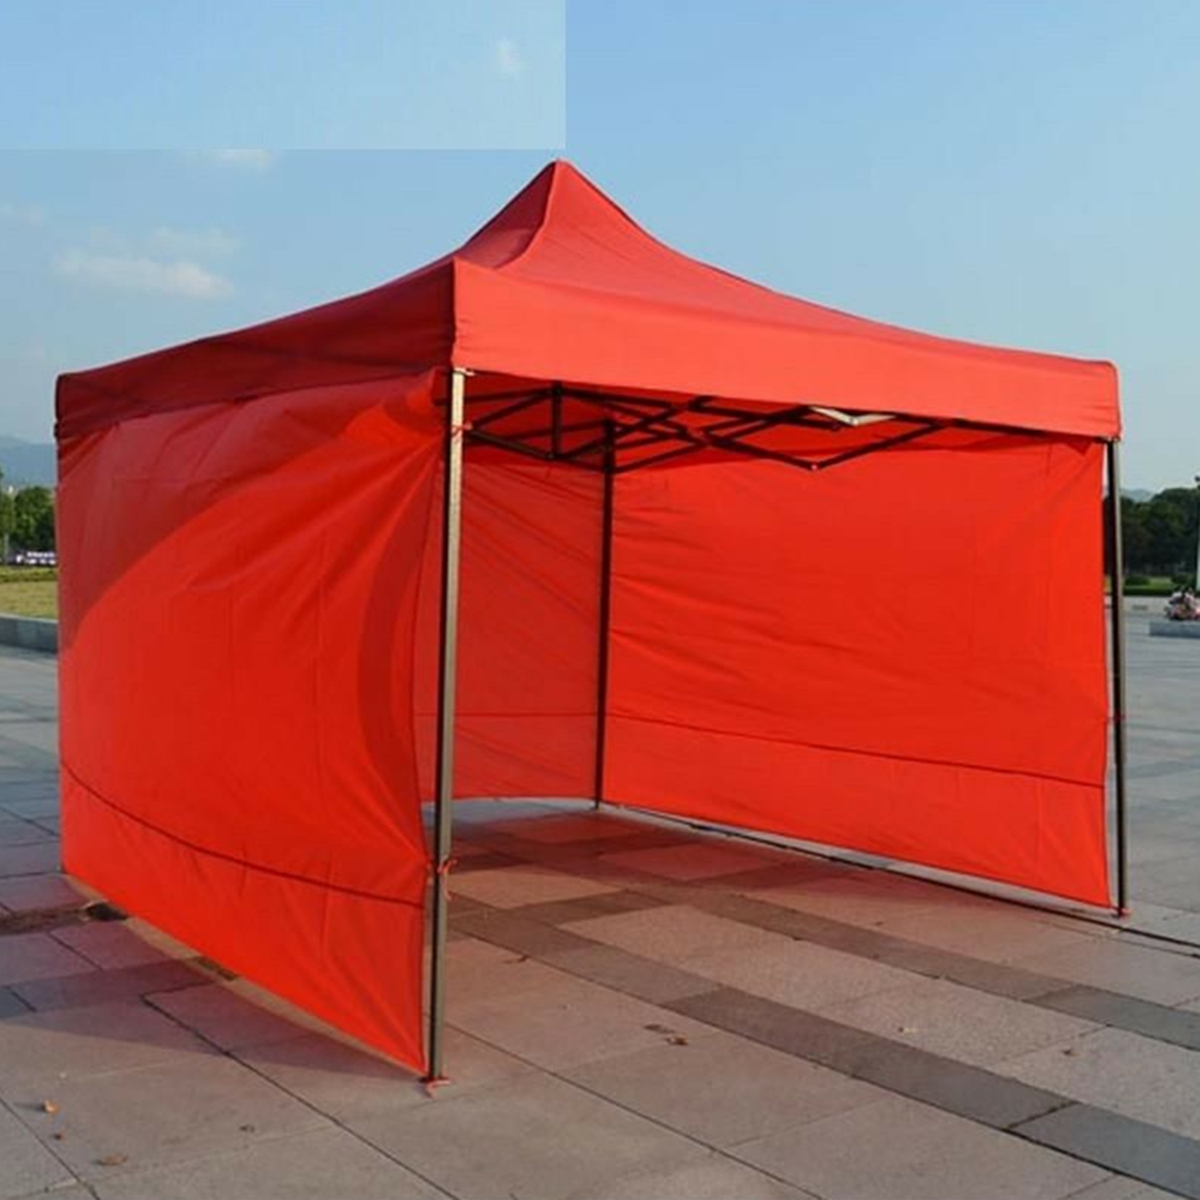 3x3m 3 Side Walls Tent Canopy Camping Travel Picnic Portable Gazebo Sunshade Cover